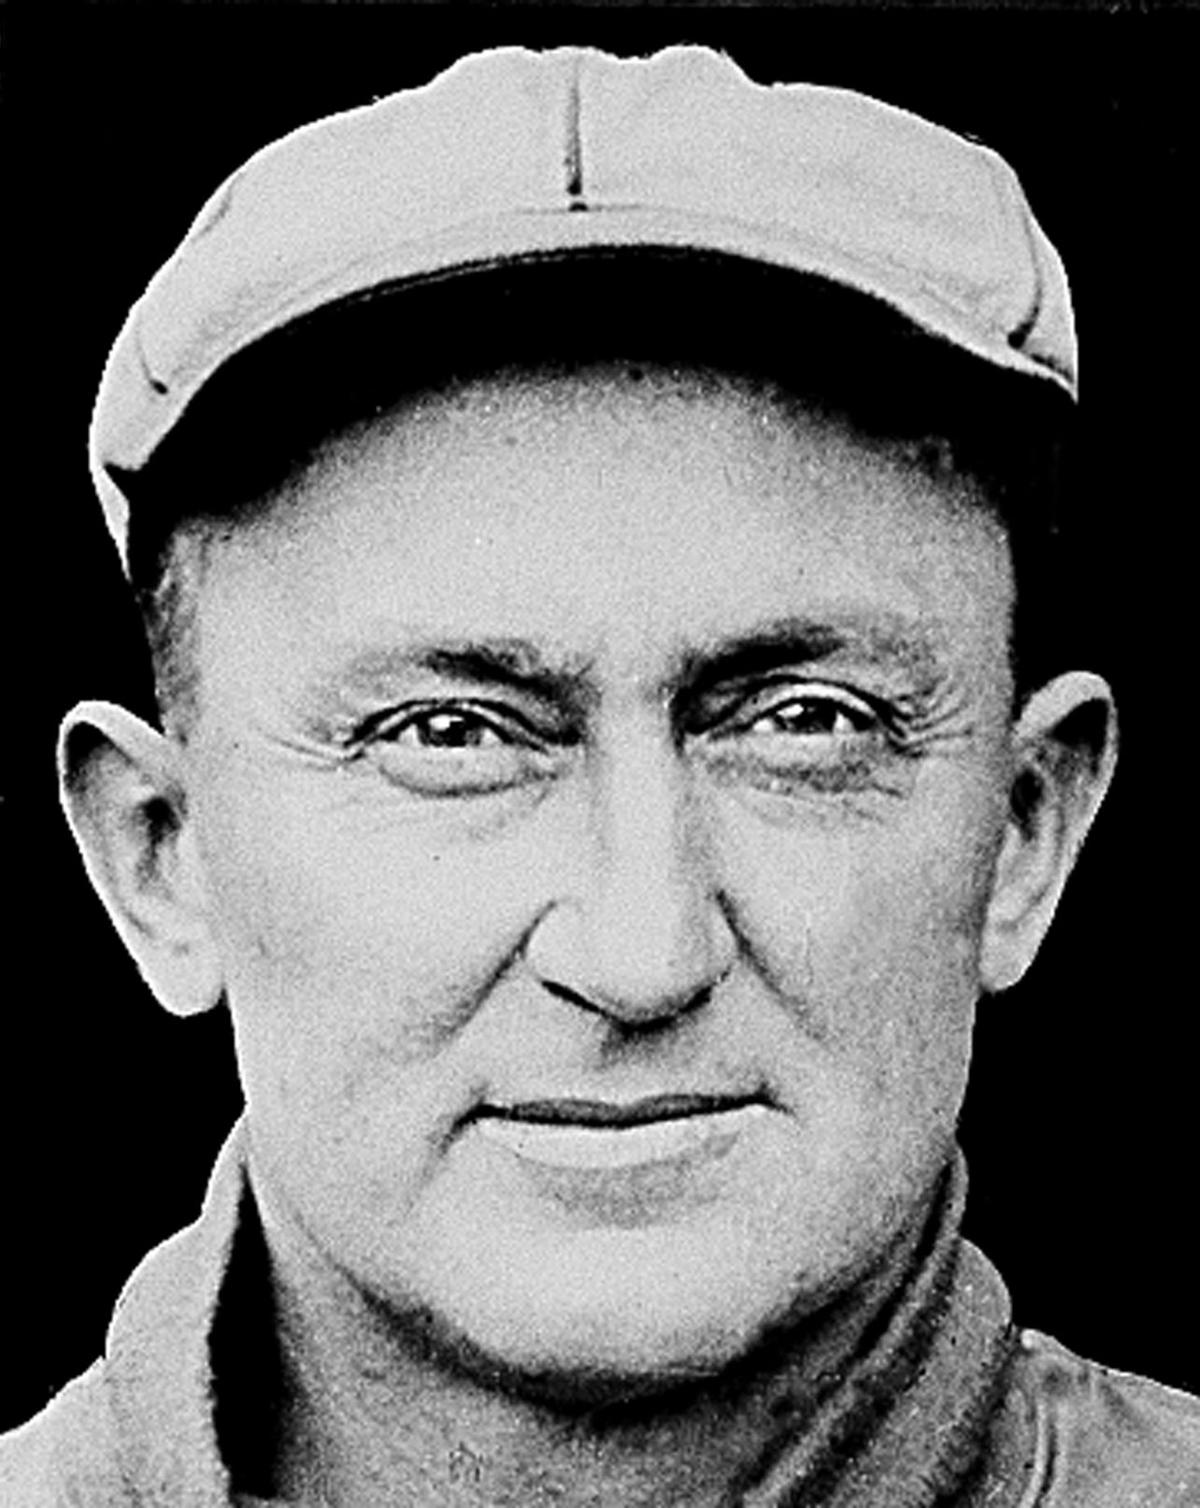 an introduction to the history and the life of ty cobb Ty cobb is baseball royalty in the most famous scandal of sports history why would we care about his life cobb died an lonely.